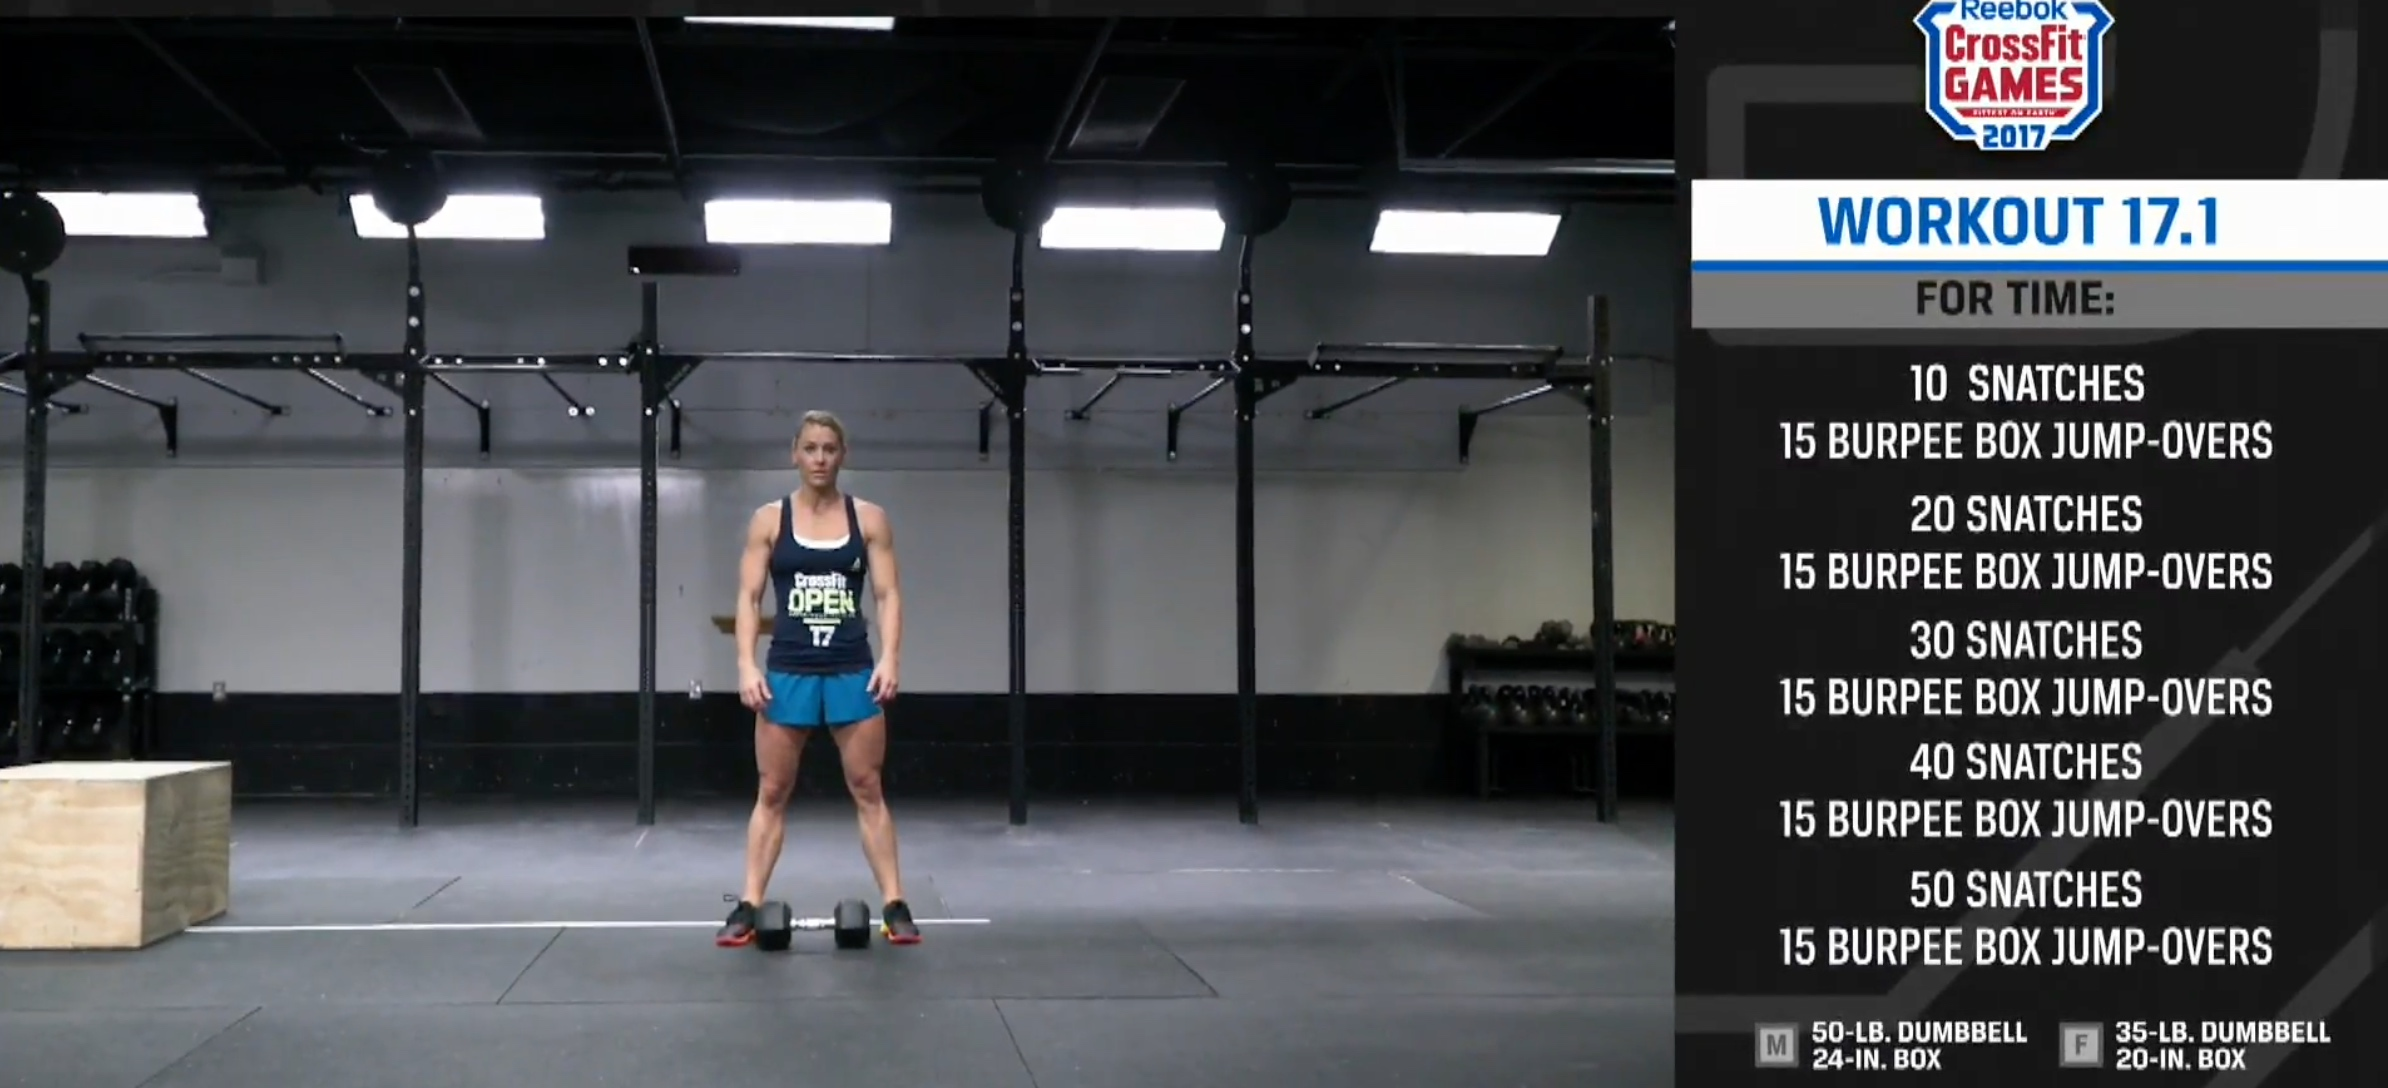 Crossfit Open 17 1 Workout Announced